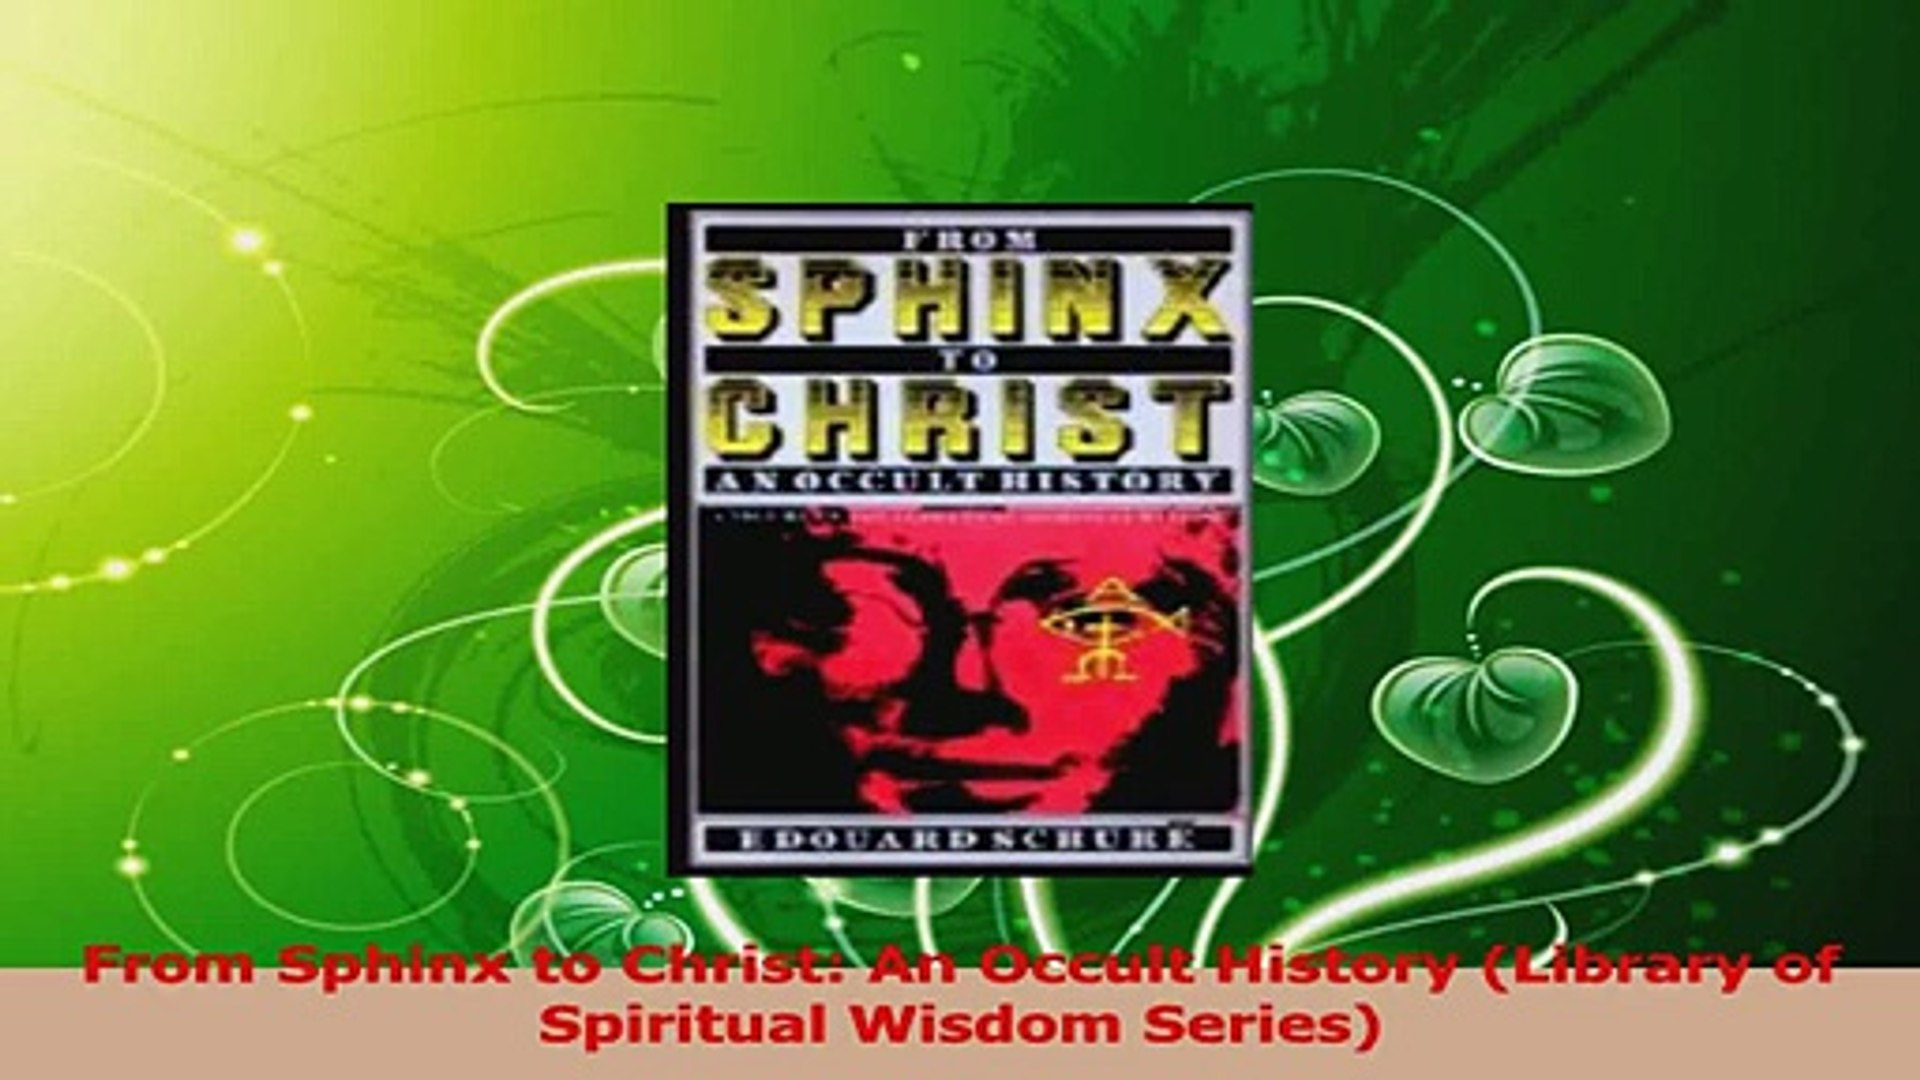 Read  From Sphinx to Christ An Occult History Library of Spiritual Wisdom Series Ebook Free